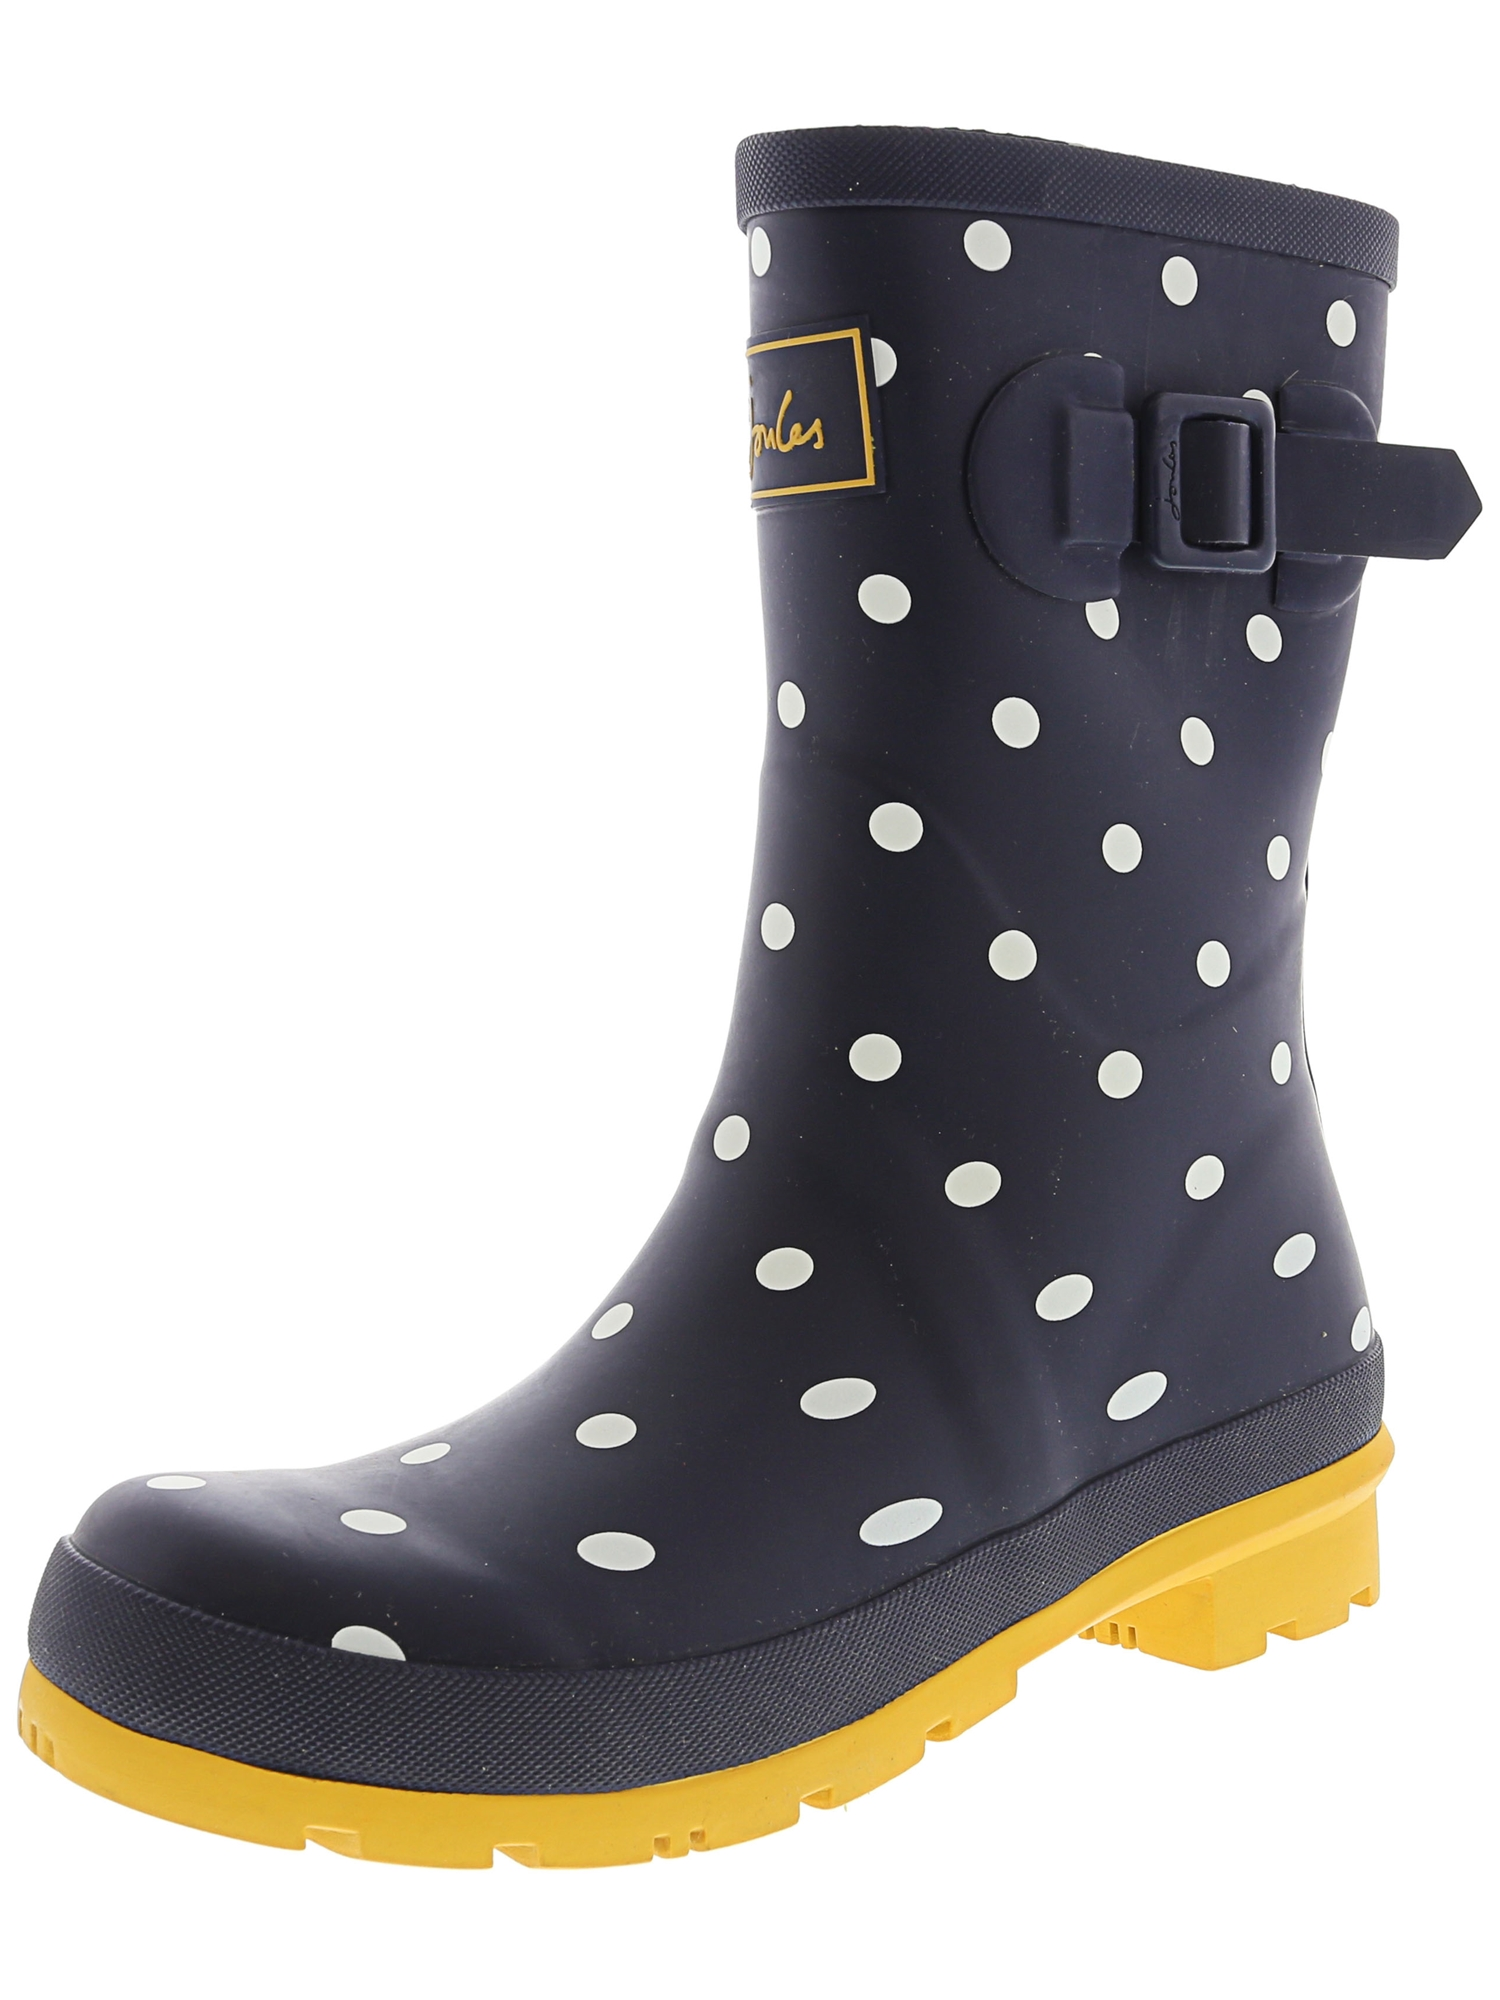 2c214ea94 Joules - Joules Women's Molly Welly Black Clematis Knee-High Rubber Rain  Boot - 6M - Walmart.com